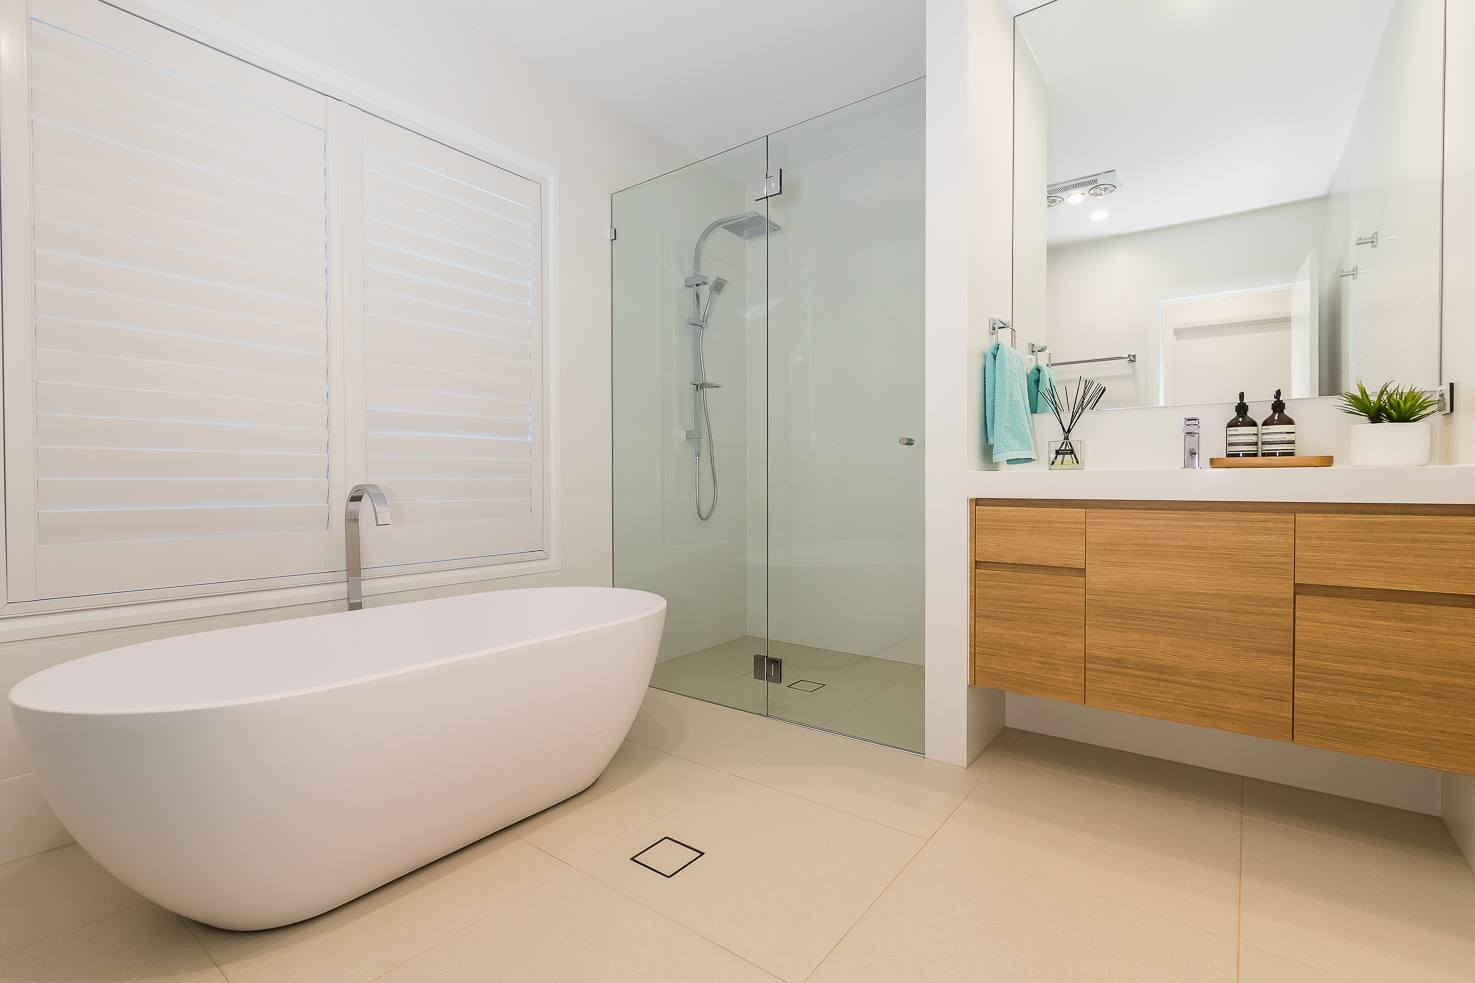 Brisbane Manly contemporary home by evermore main bathroom with freestanding bath